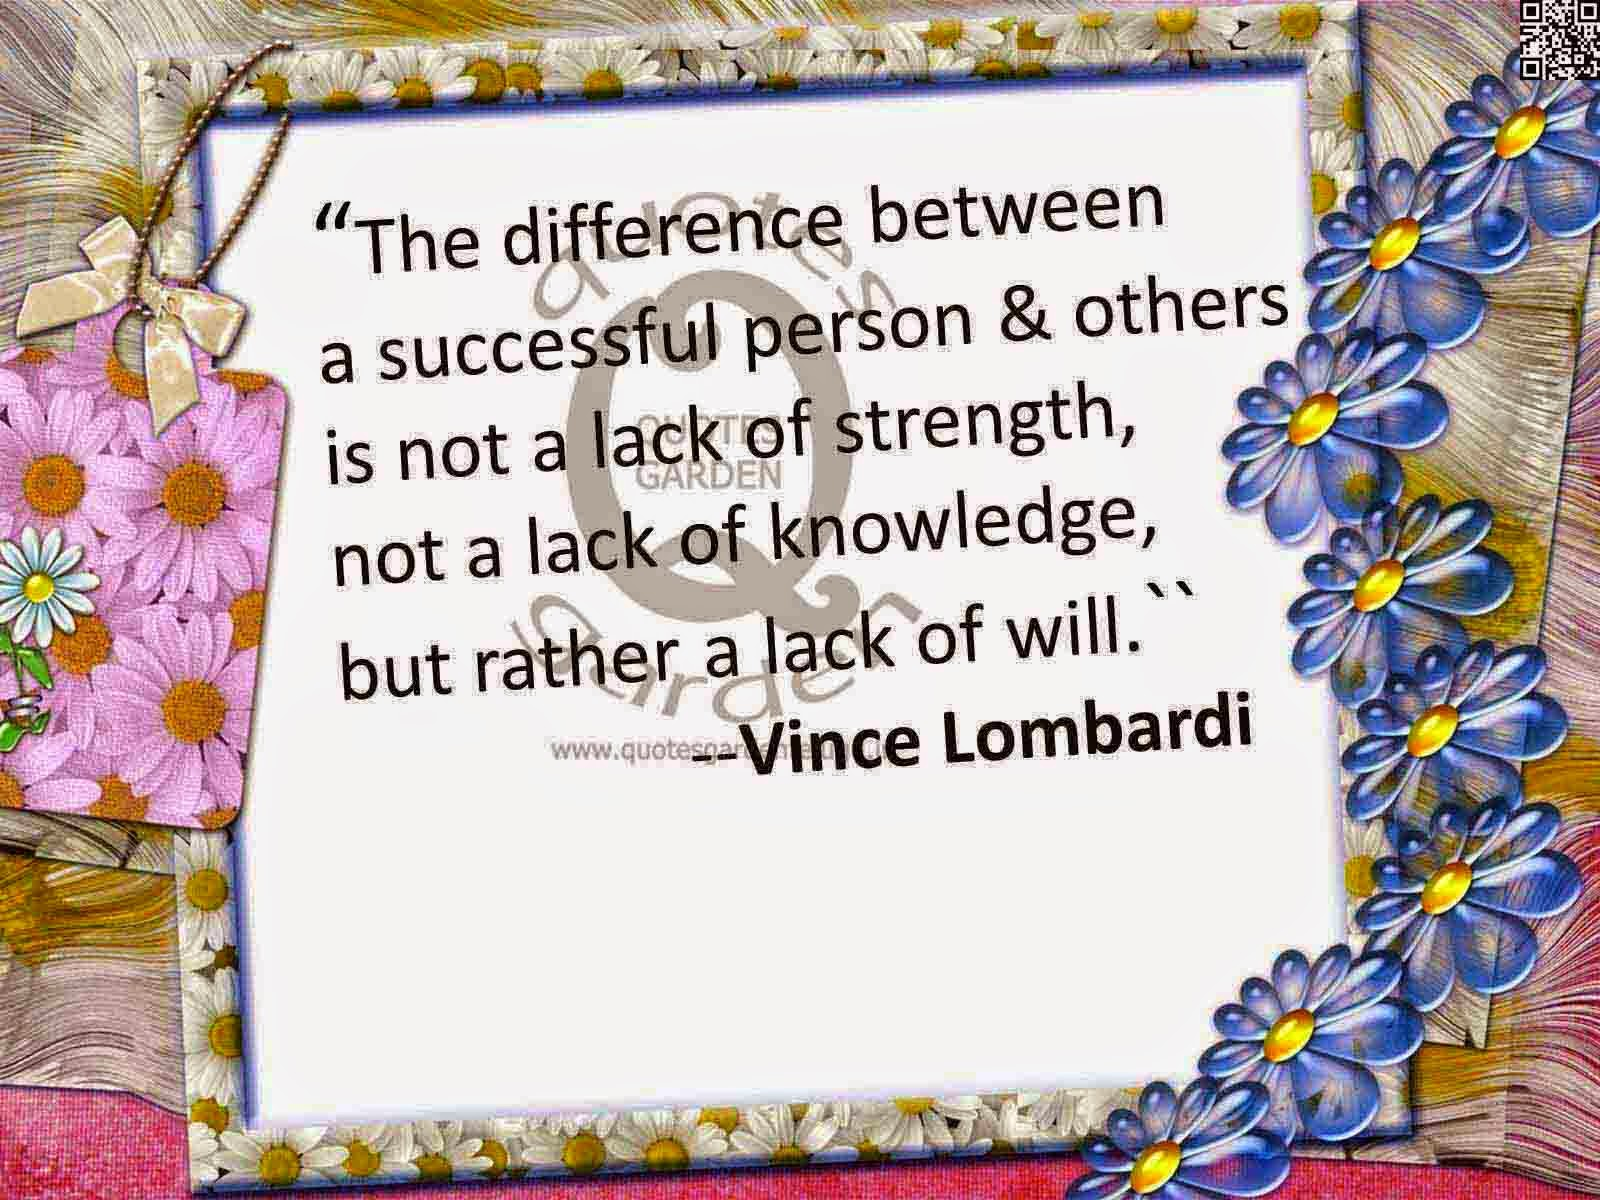 Best inspirational Quotes on Success by Vince Lombardi